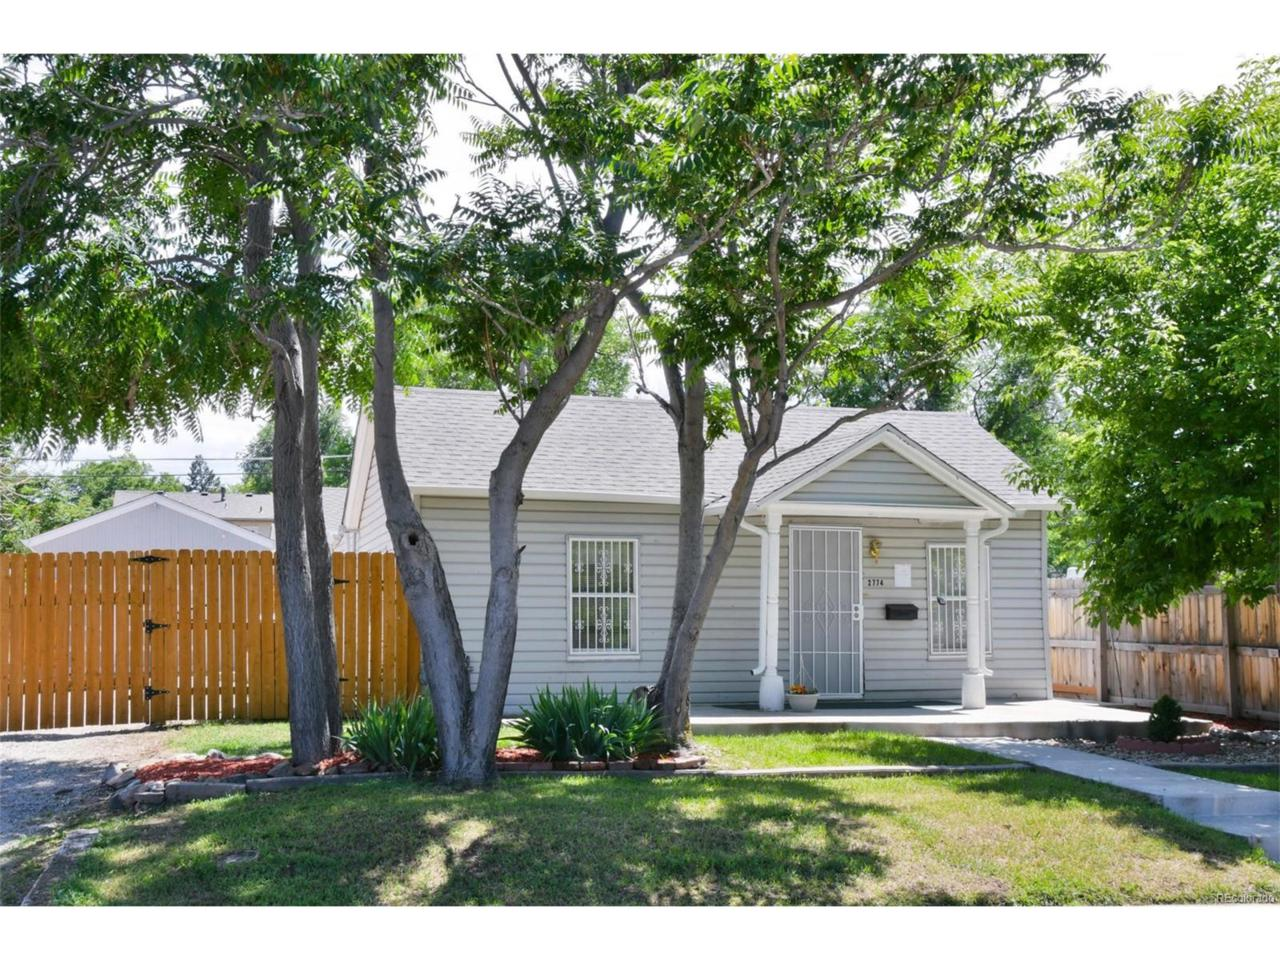 2774 W Irvington Place, Denver, CO 80219 (MLS #6242600) :: 8z Real Estate